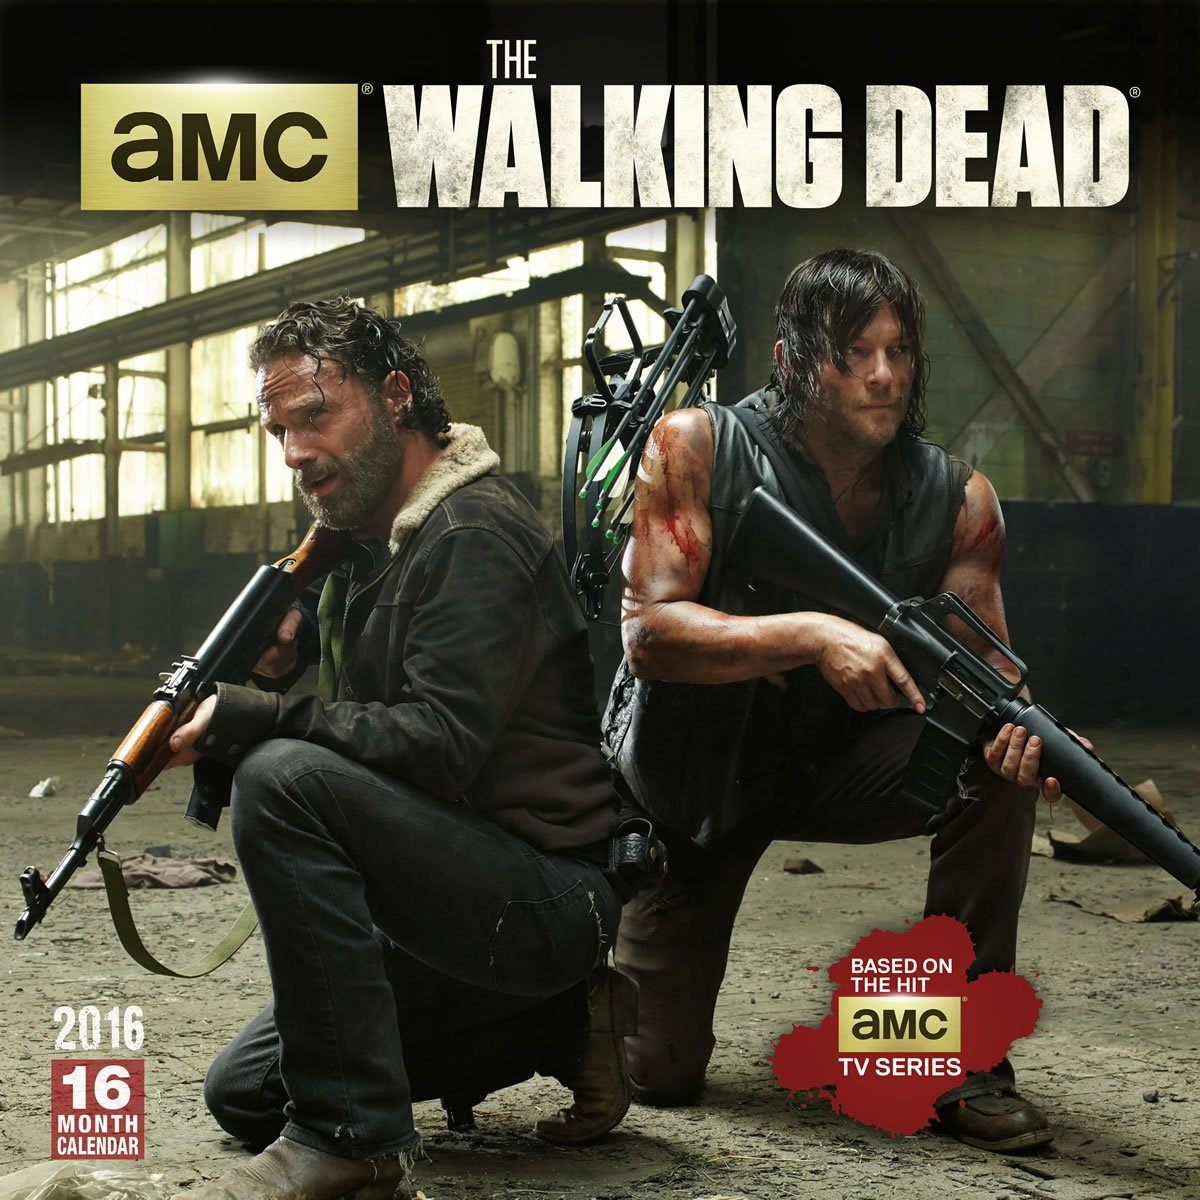 Walking Dead 2019 Calendar Walking Dead 2016 Wall Calendar: Amc: 9781416297789: Amazon.com: Books